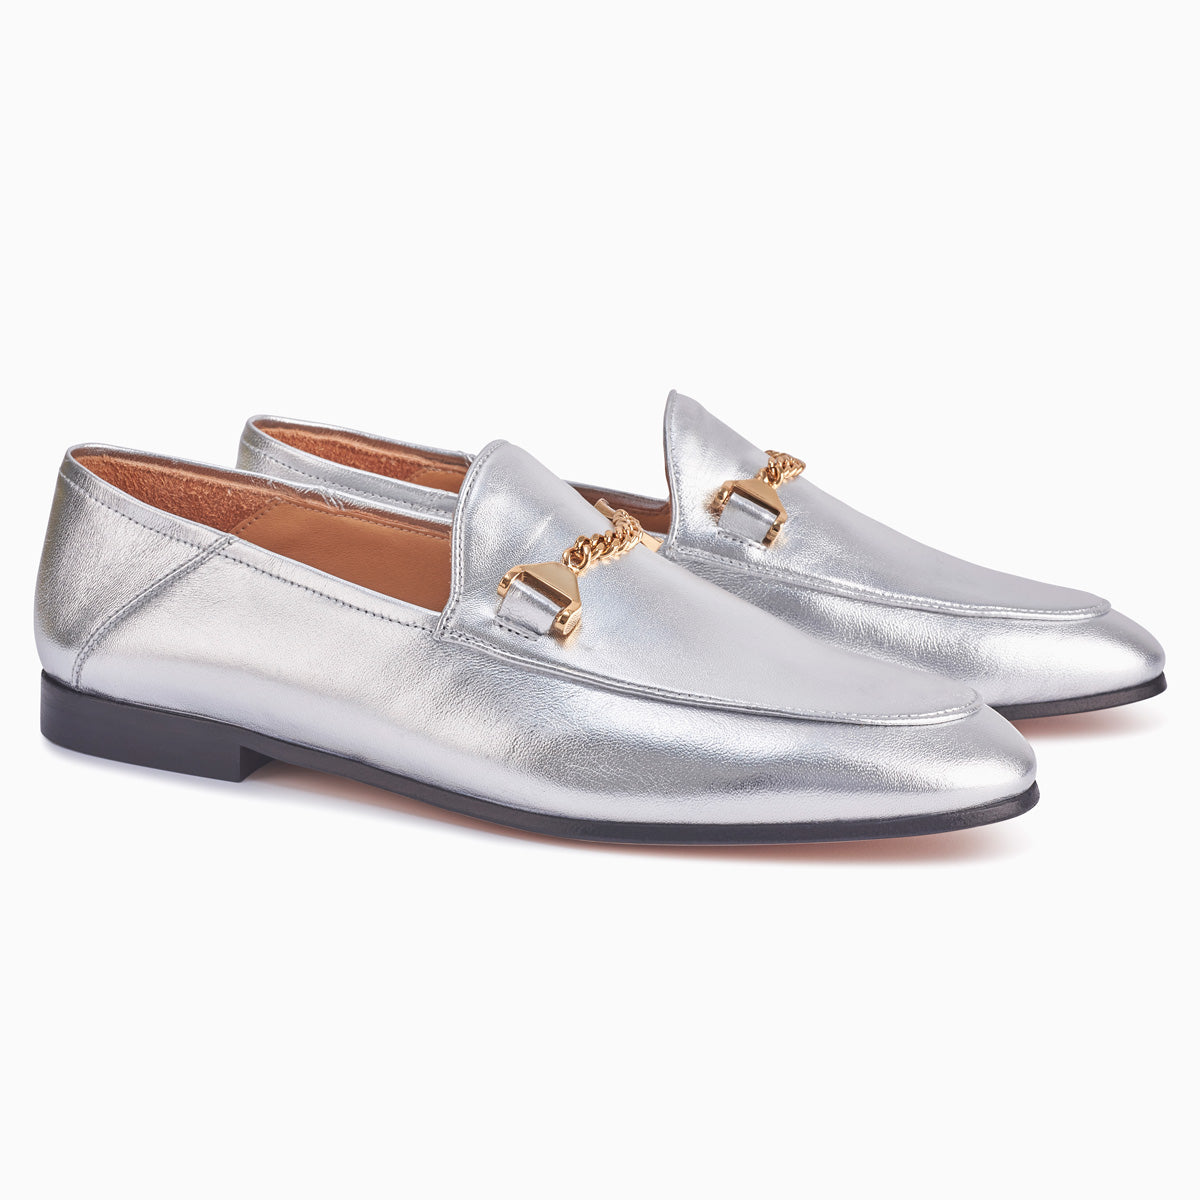 Hyusto Debbie Loafer Silver Glove 3/4 view pair